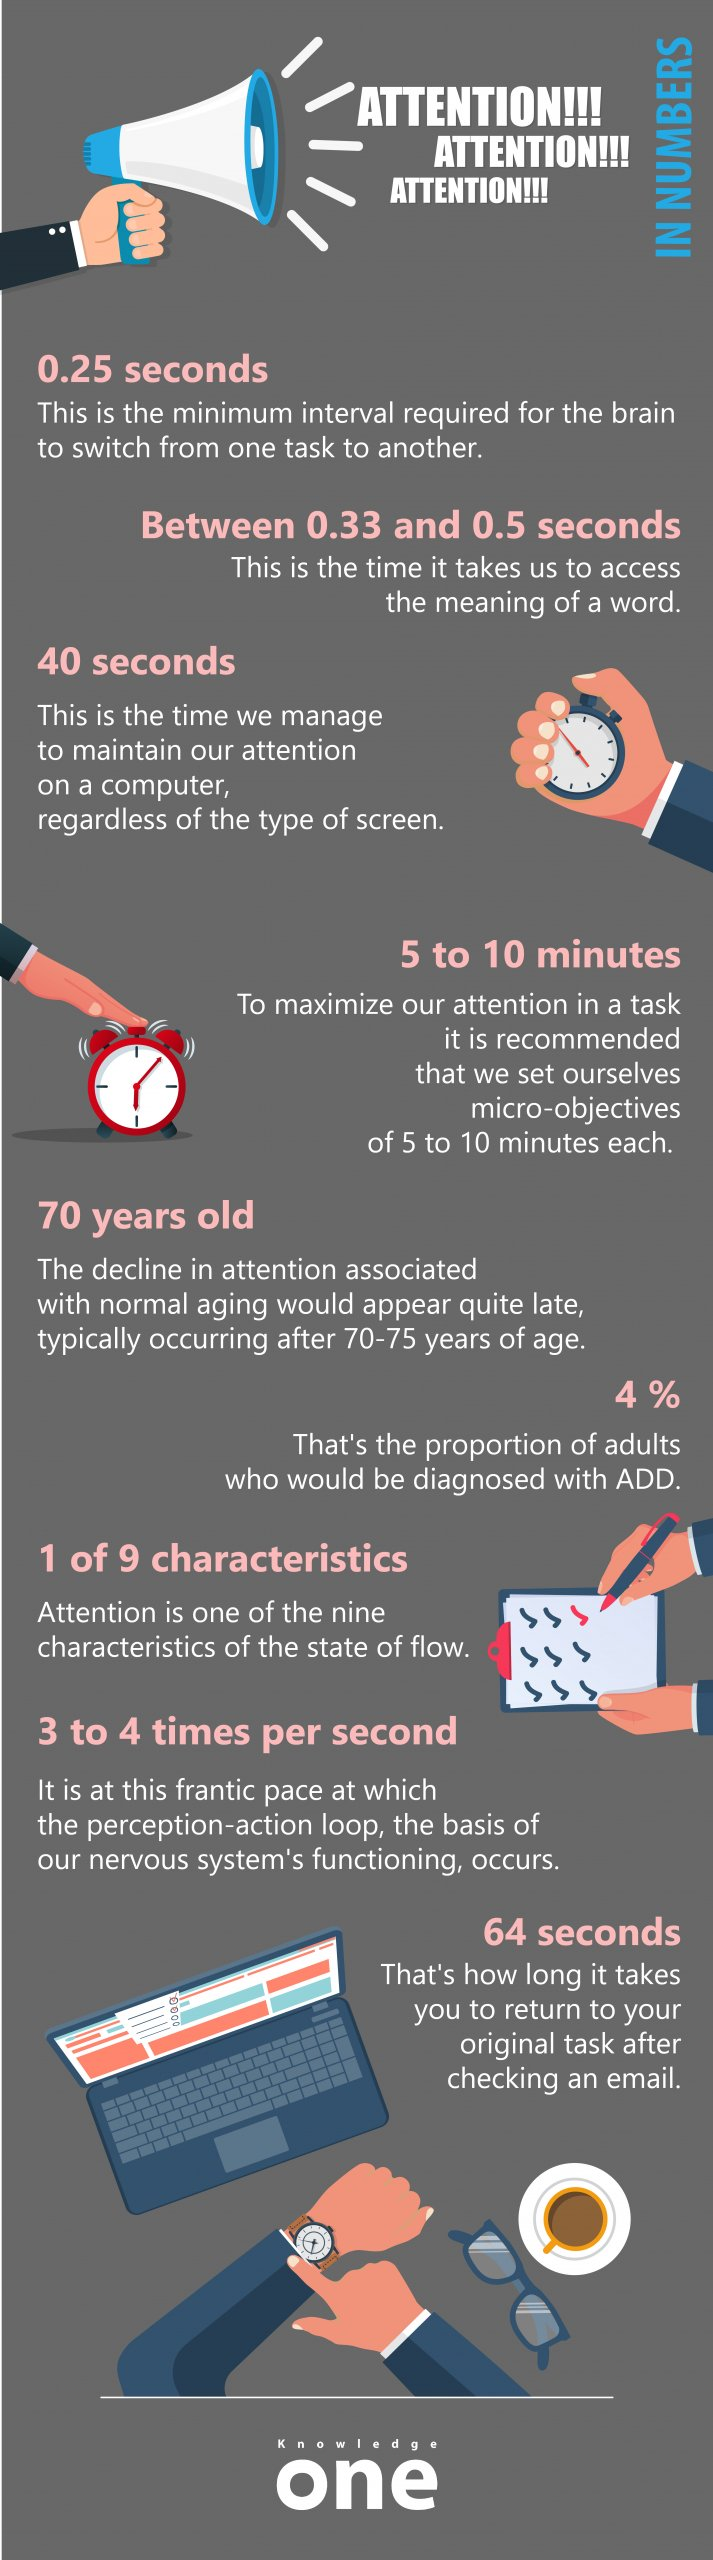 Infographic on key numbers about attention